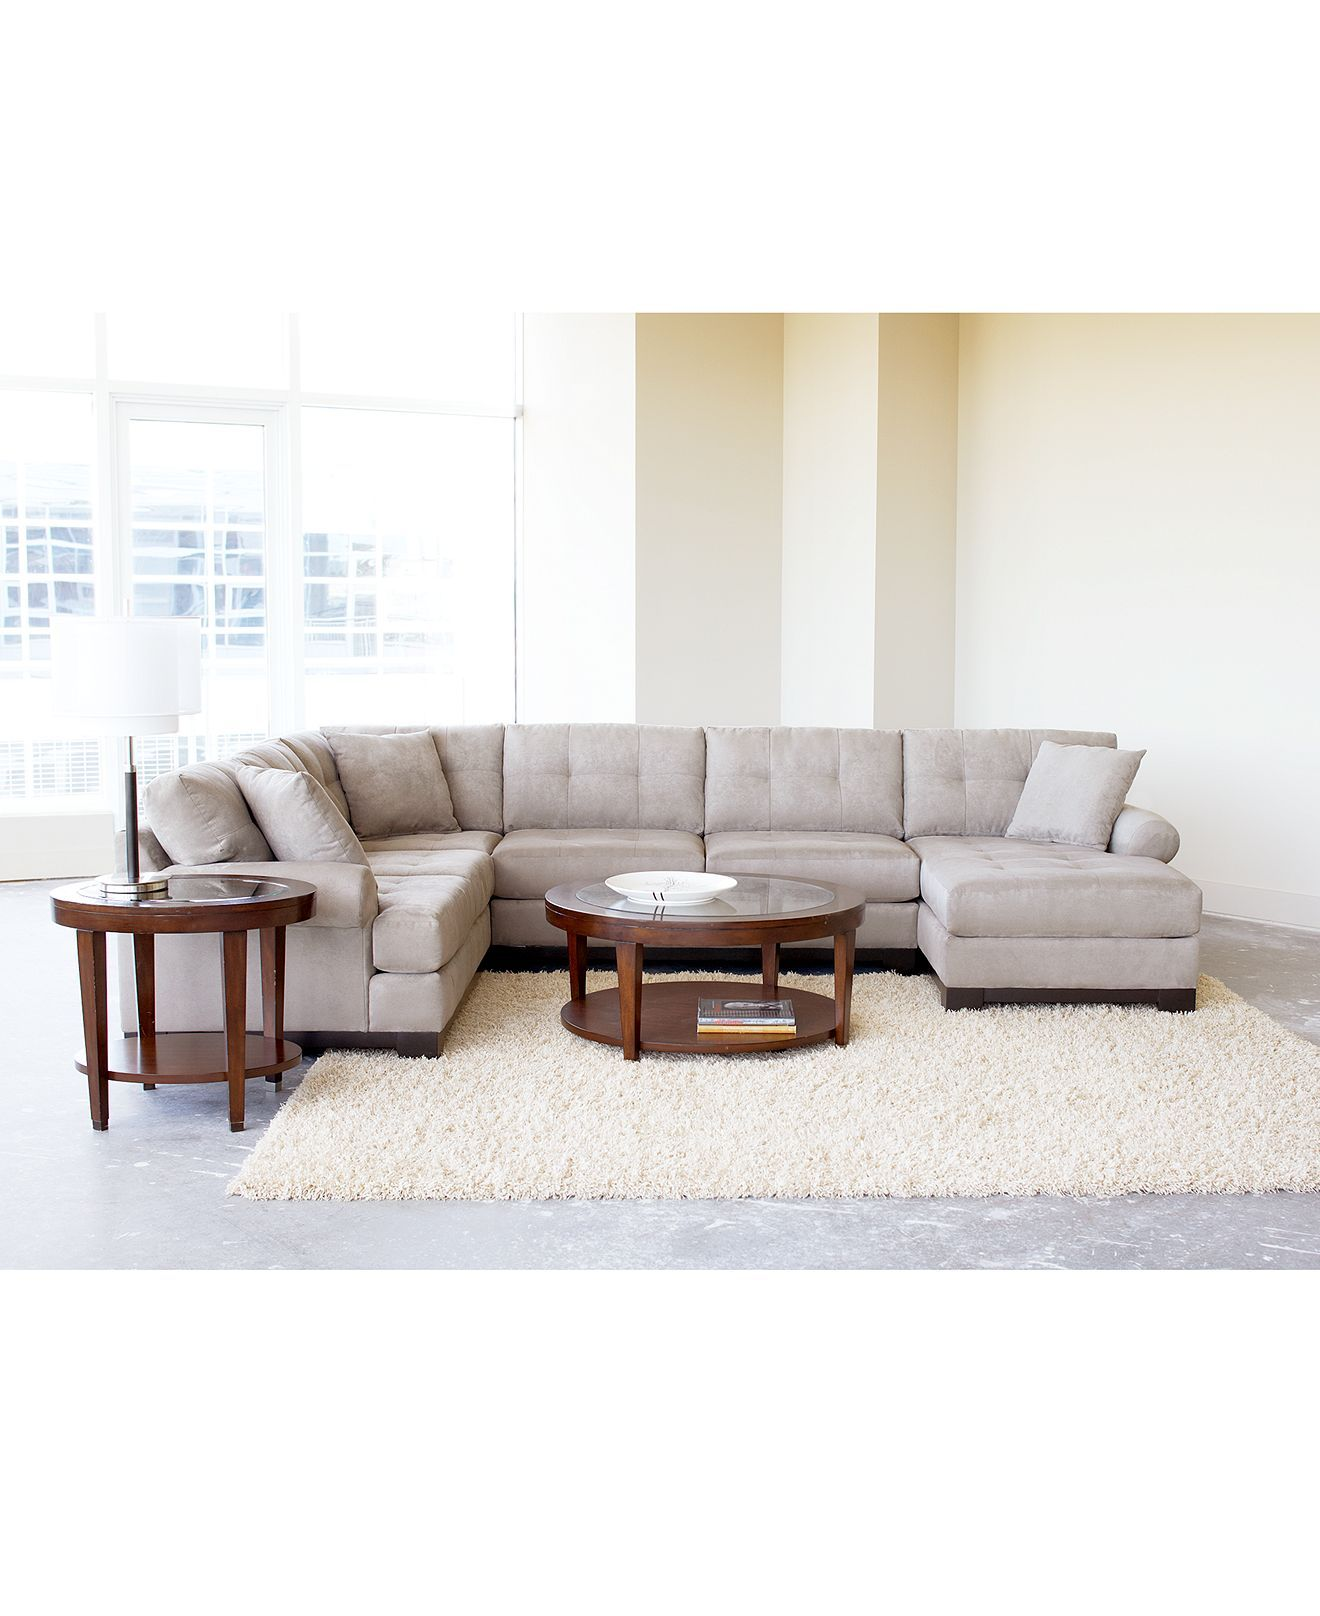 Macys Furnitur: Evan Living Room Furniture Sets & Pieces